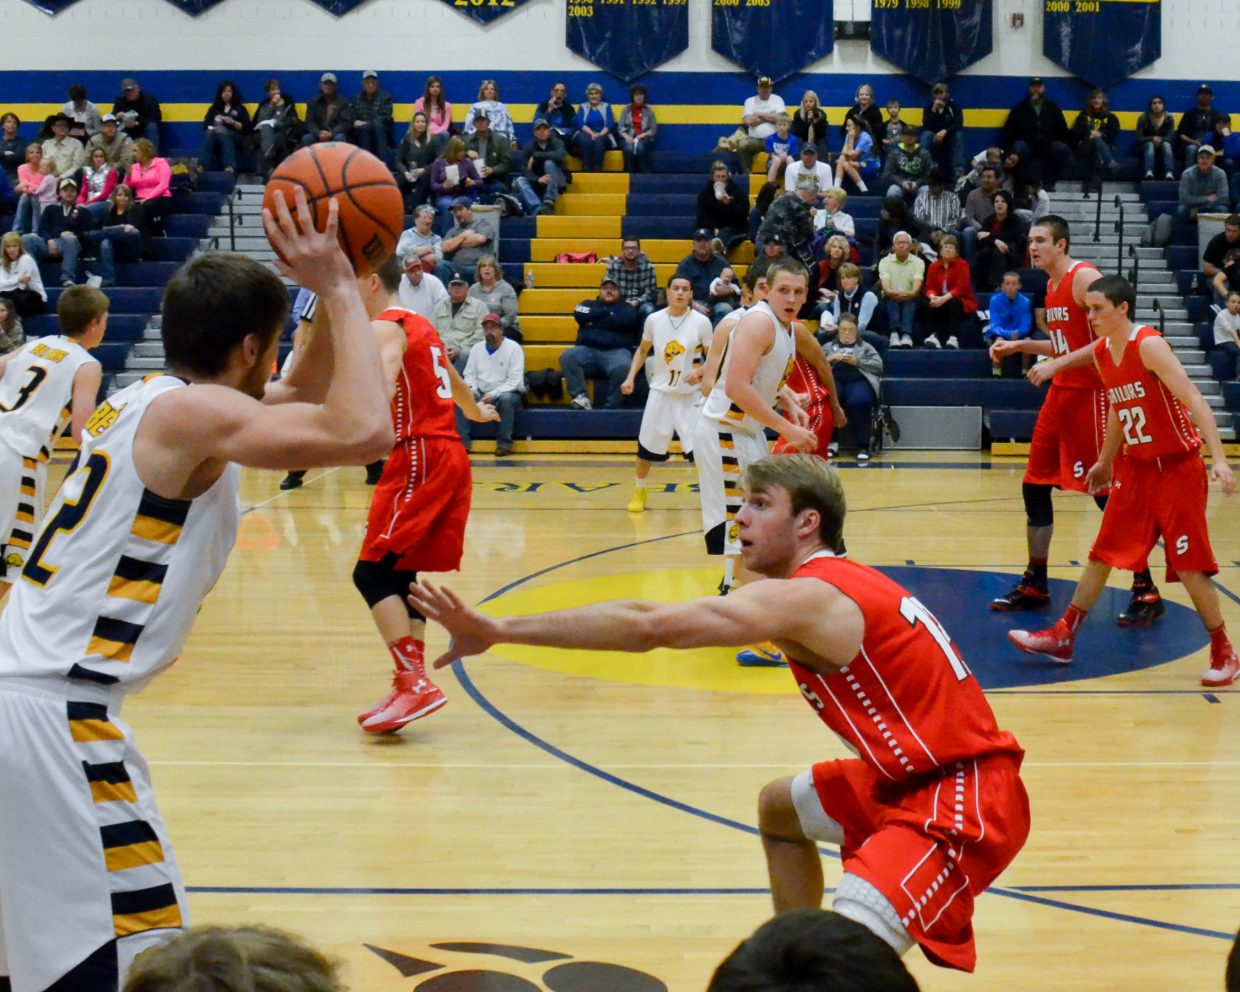 Nathan DePuy plays strong defense against Rifle in the Sailor's victory. Submitted by: Jan DePuy